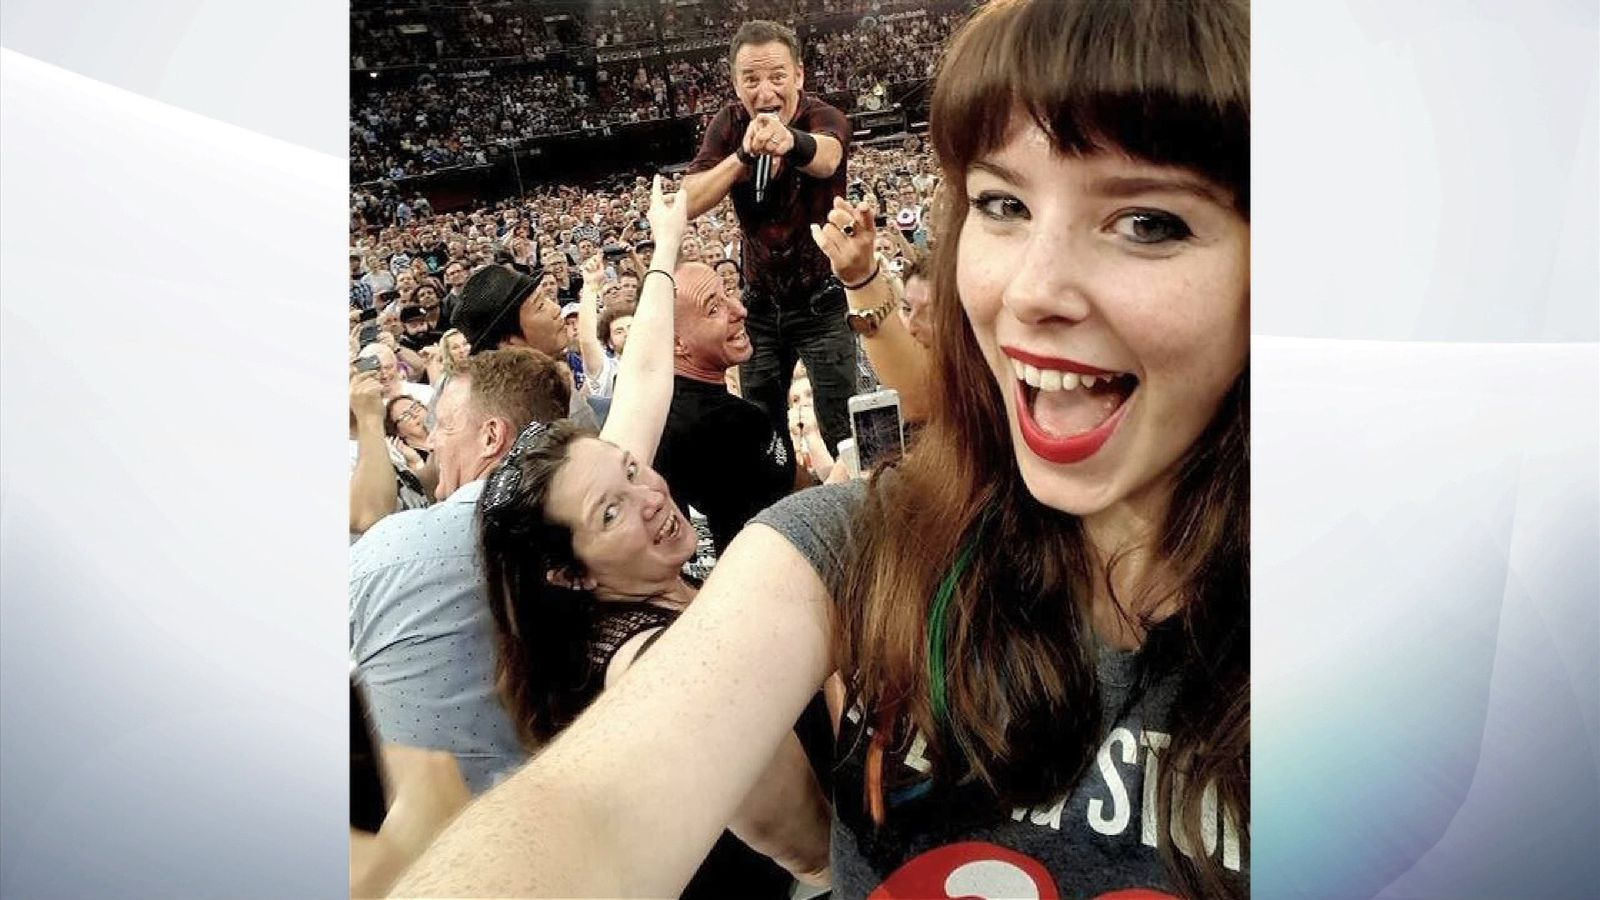 Jessica Bloom selfie with Bruce Springsteen